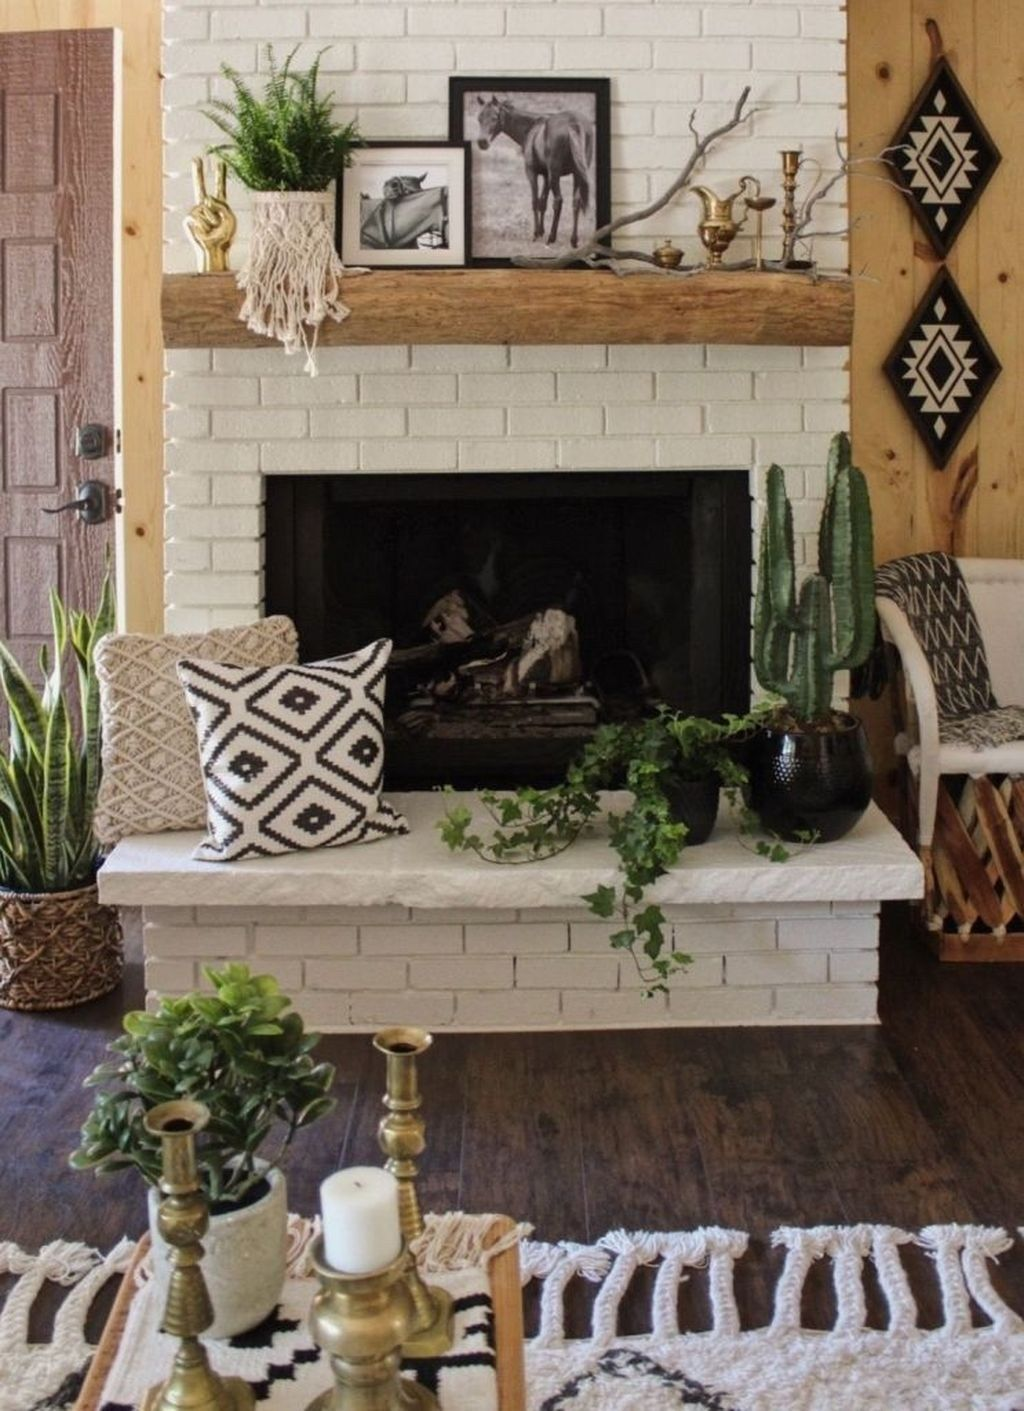 41 Genius Fireplace Makeover Design Ideas Home By X Aztec Home Decor Fireplace Makeover Fireplace Mantel Decor